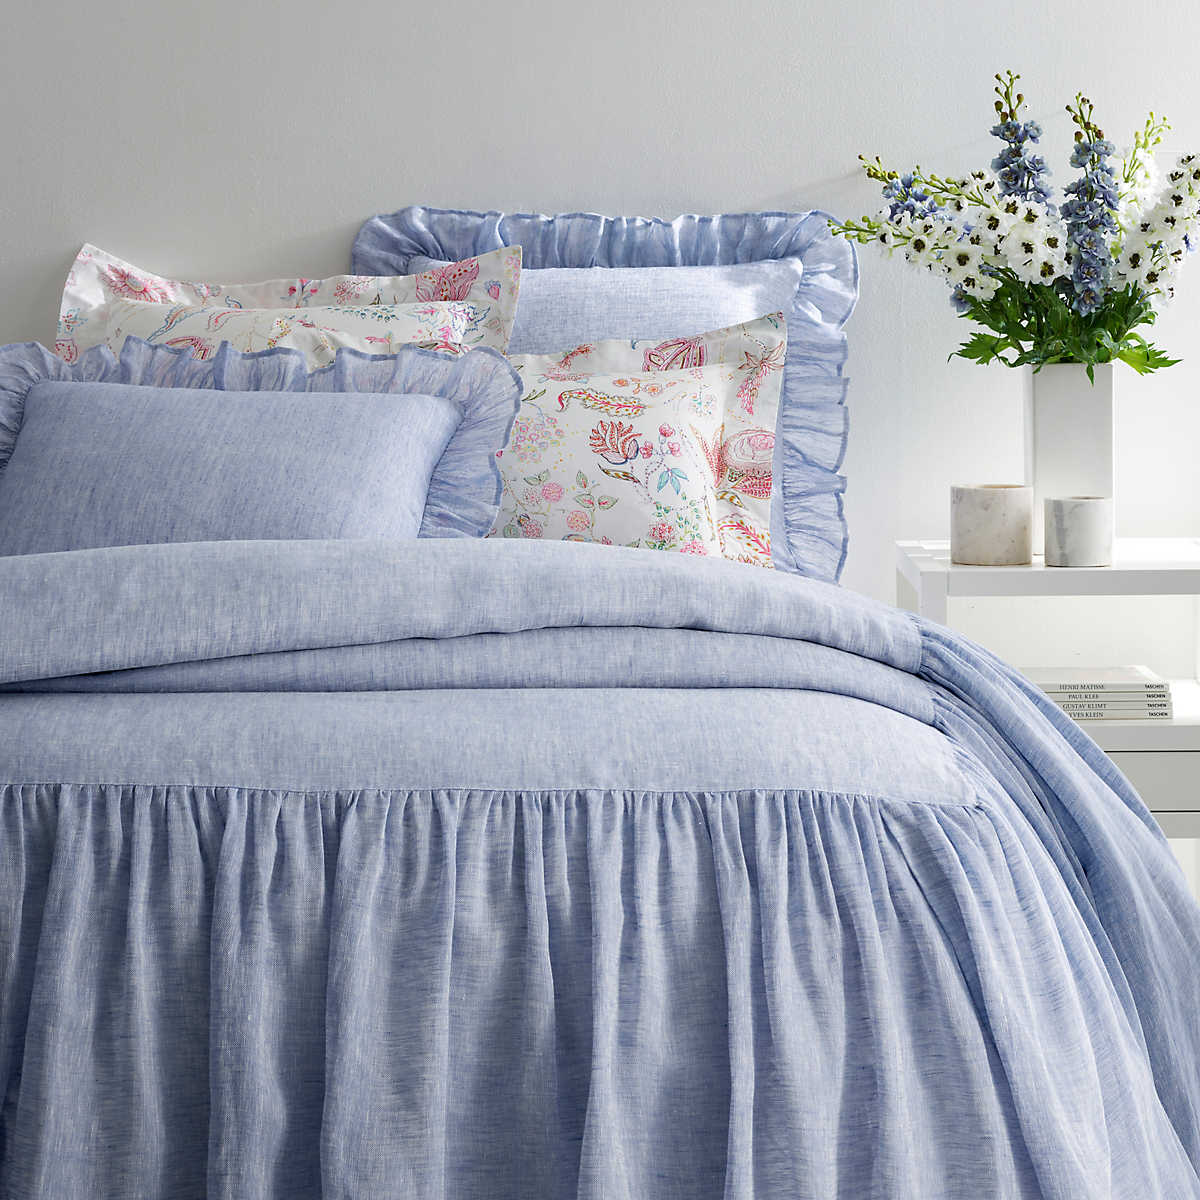 Savannah Linen Chambray French Blue Bedspread Pine Cone Hill